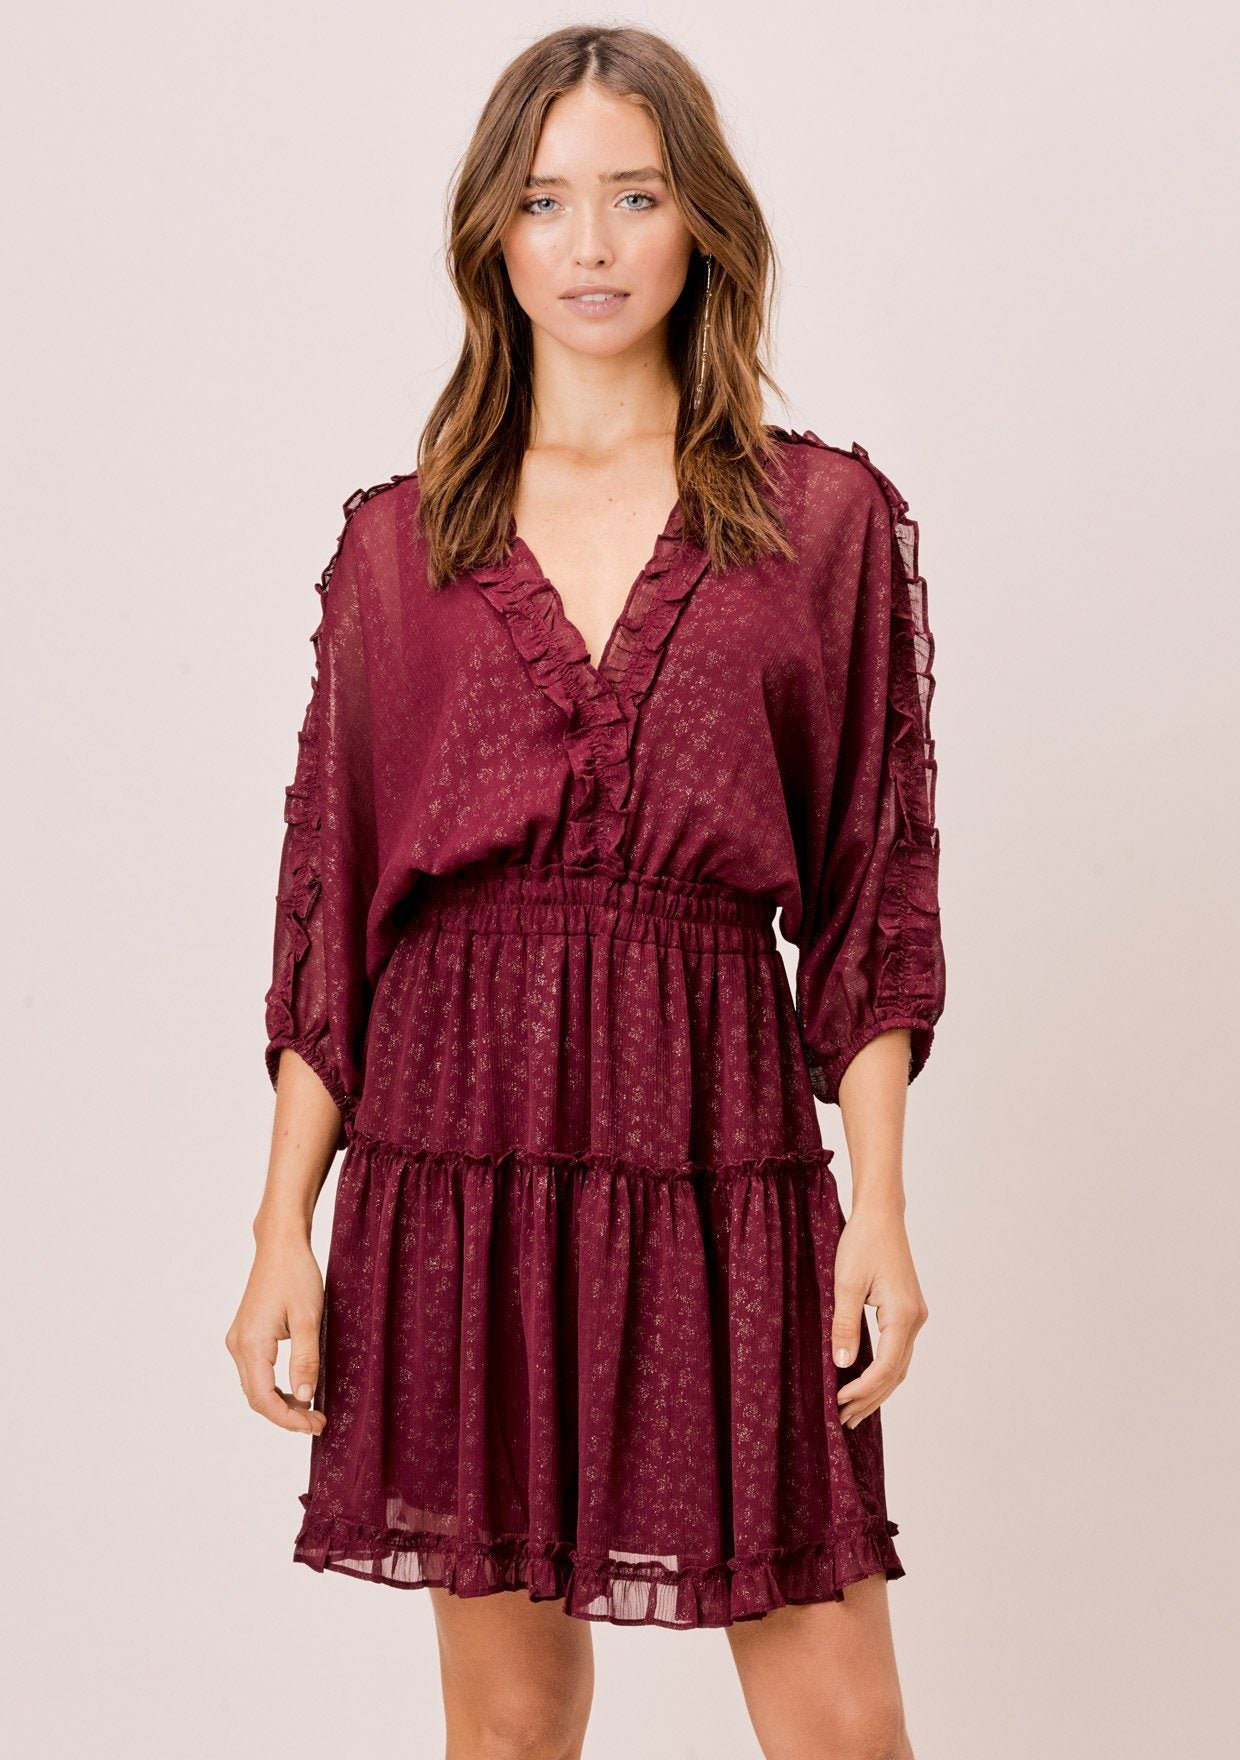 [Color: Wine/Gold] Lovestitch wine/gold Foil chiffon, dolman sleeve mini dress with smocked elastic waist and all over ruffled details.